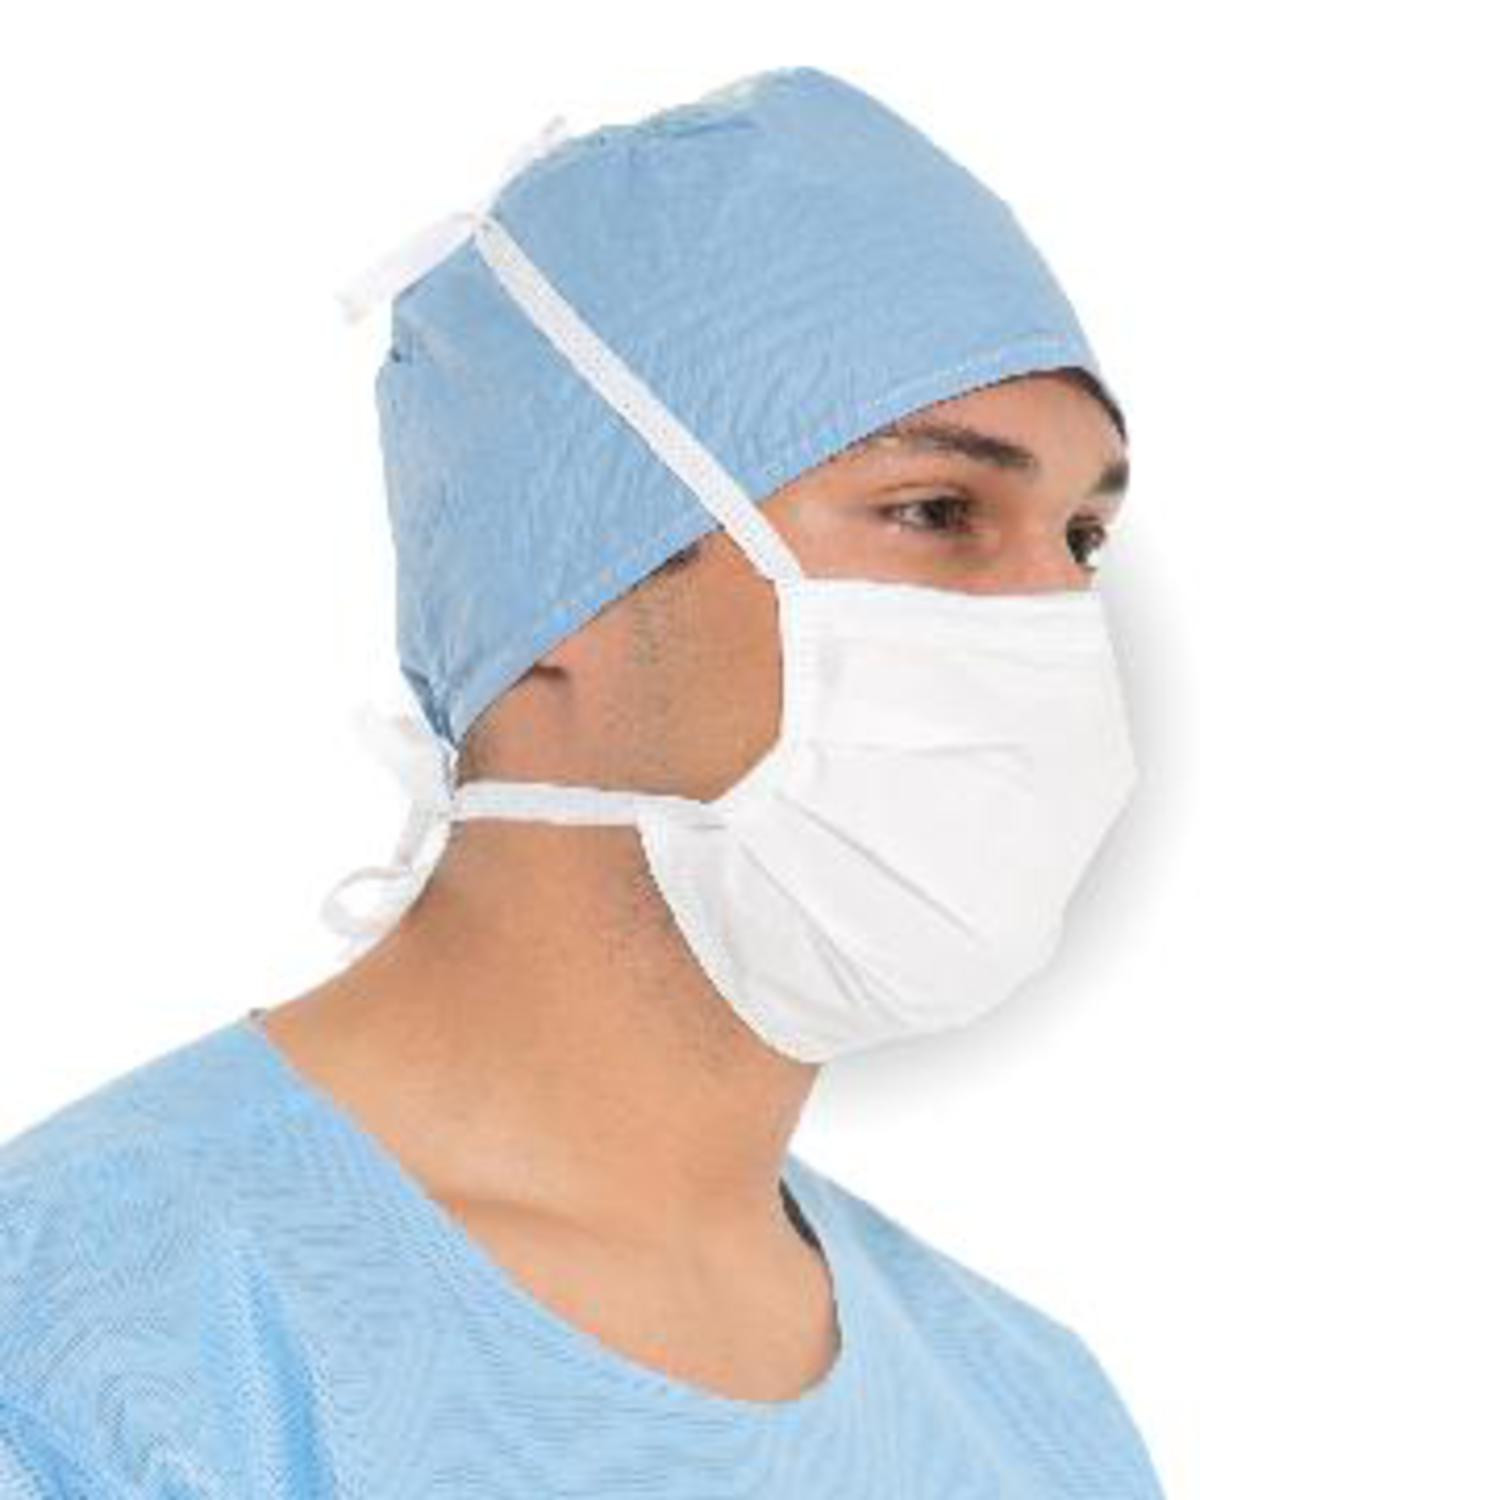 surgical mask - photo #49